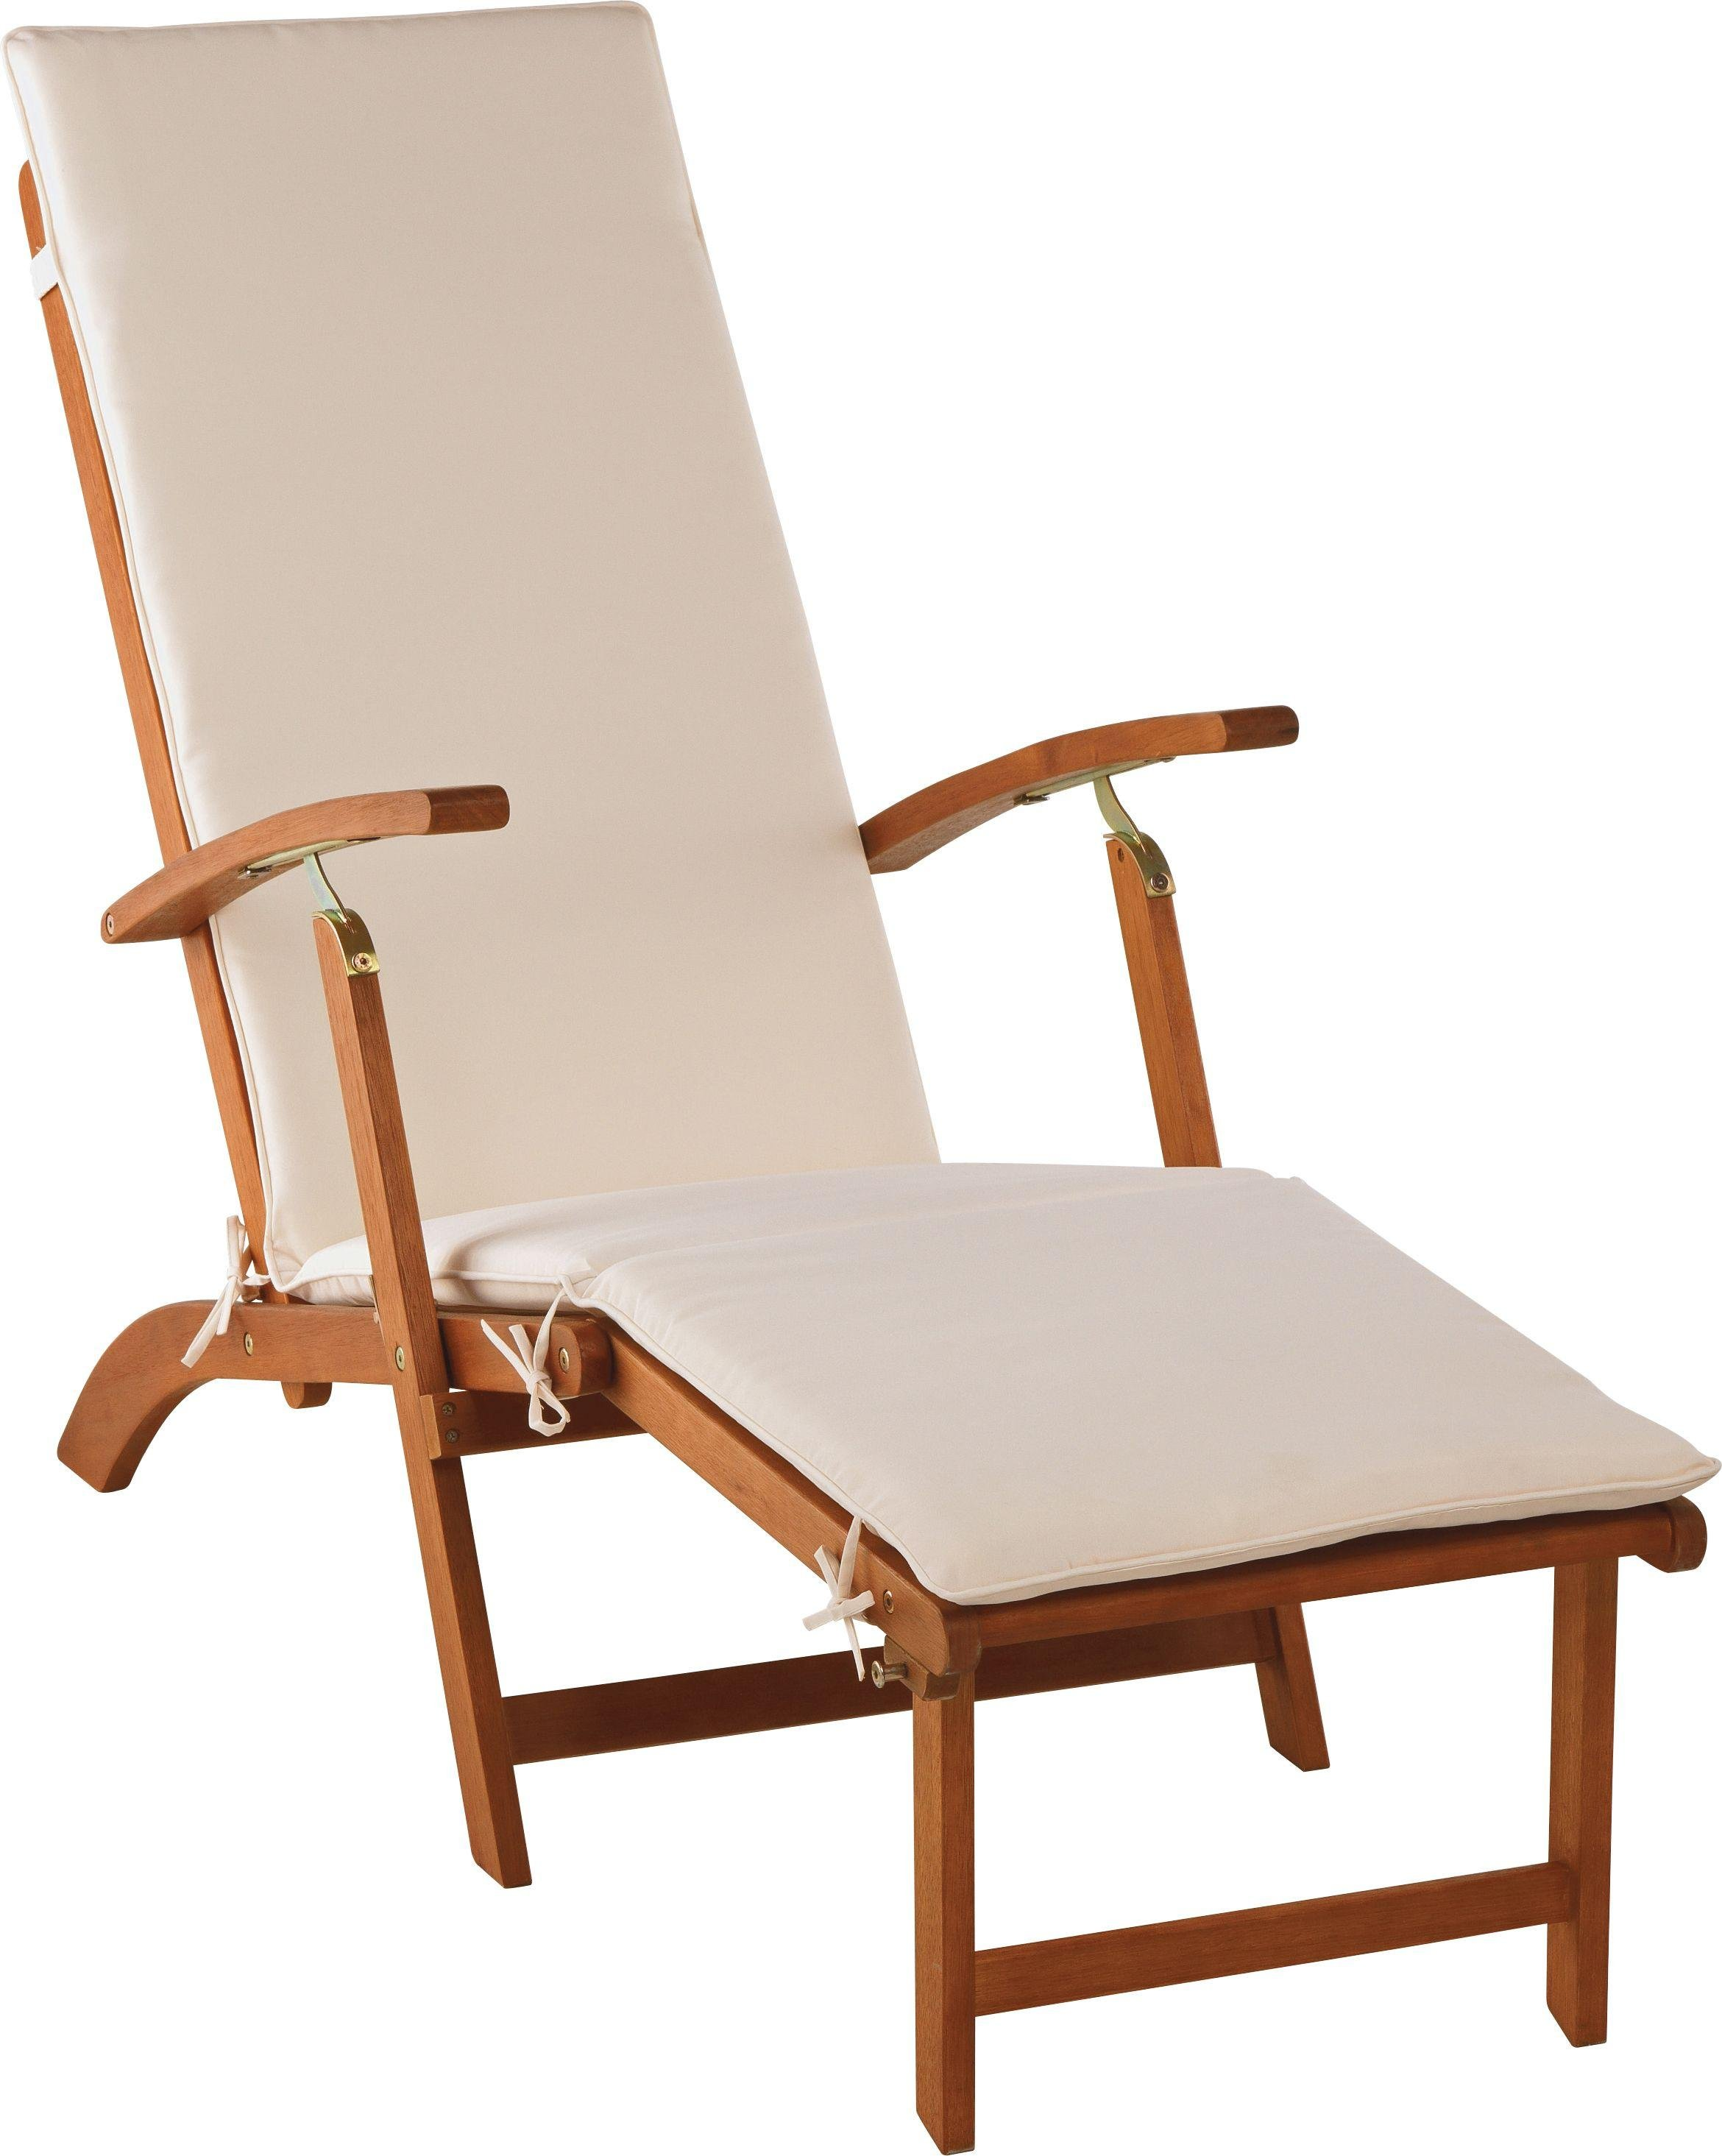 Image of HOME - Steamer Foldable Multiposition Sun Lounger with Cushion